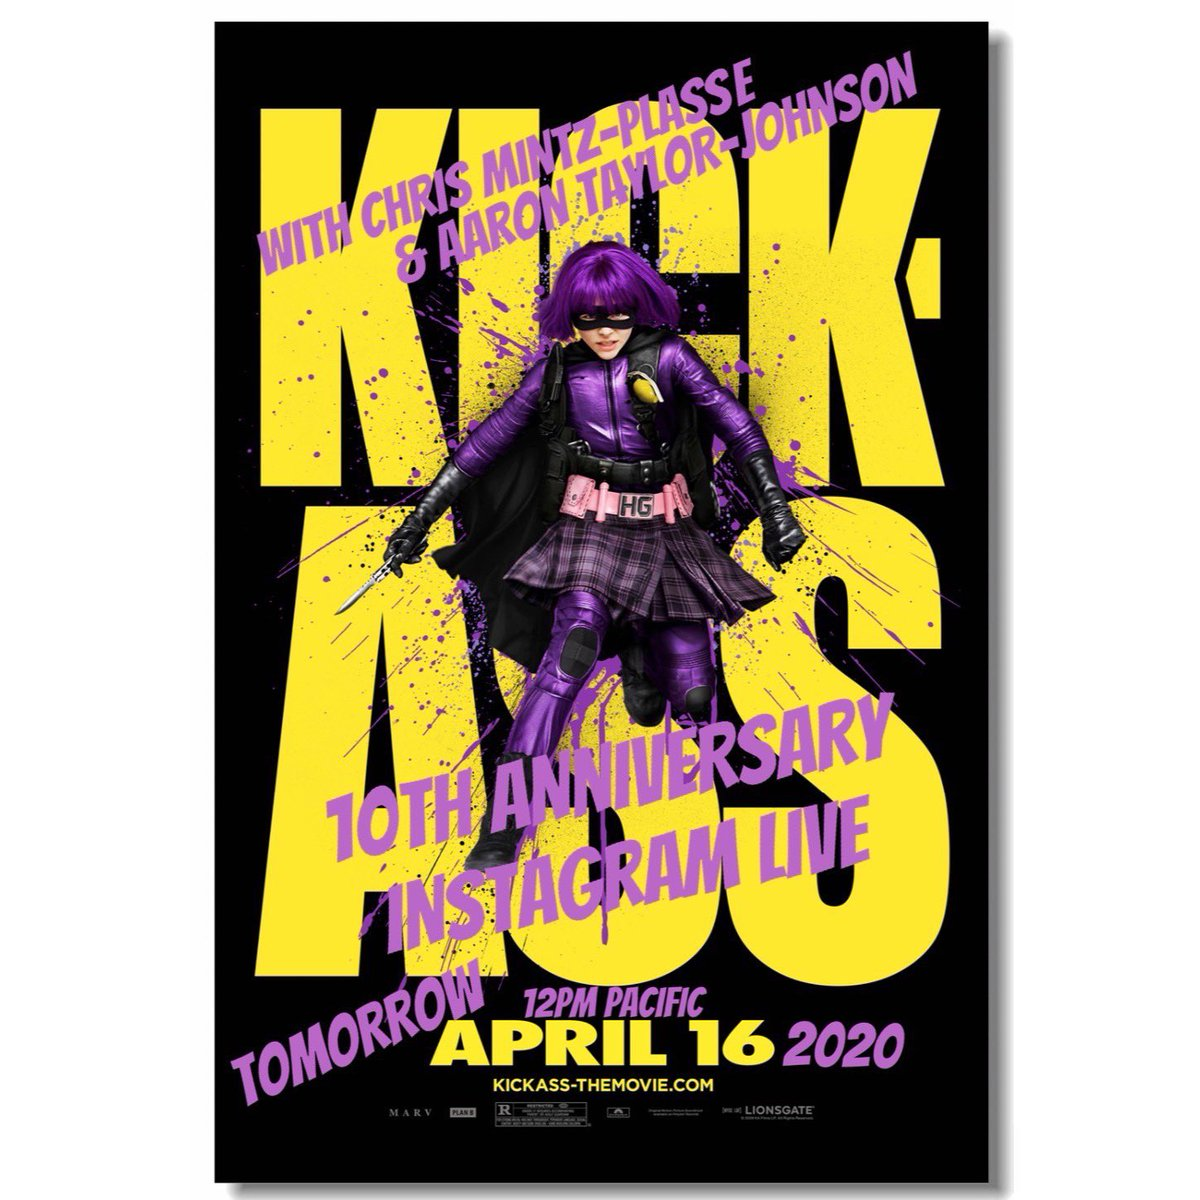 So excited to tell you guys.. I was chatting with #aarontaylorjohnson and @MintzPlasse and we decided to go on my Instagram live tomorrow at 12pm Pacific time to chat with all of you about our movie #KickAss in honor of the 10th anniversary!! So think of your questions cya there! https://t.co/bLo1DHcCSP